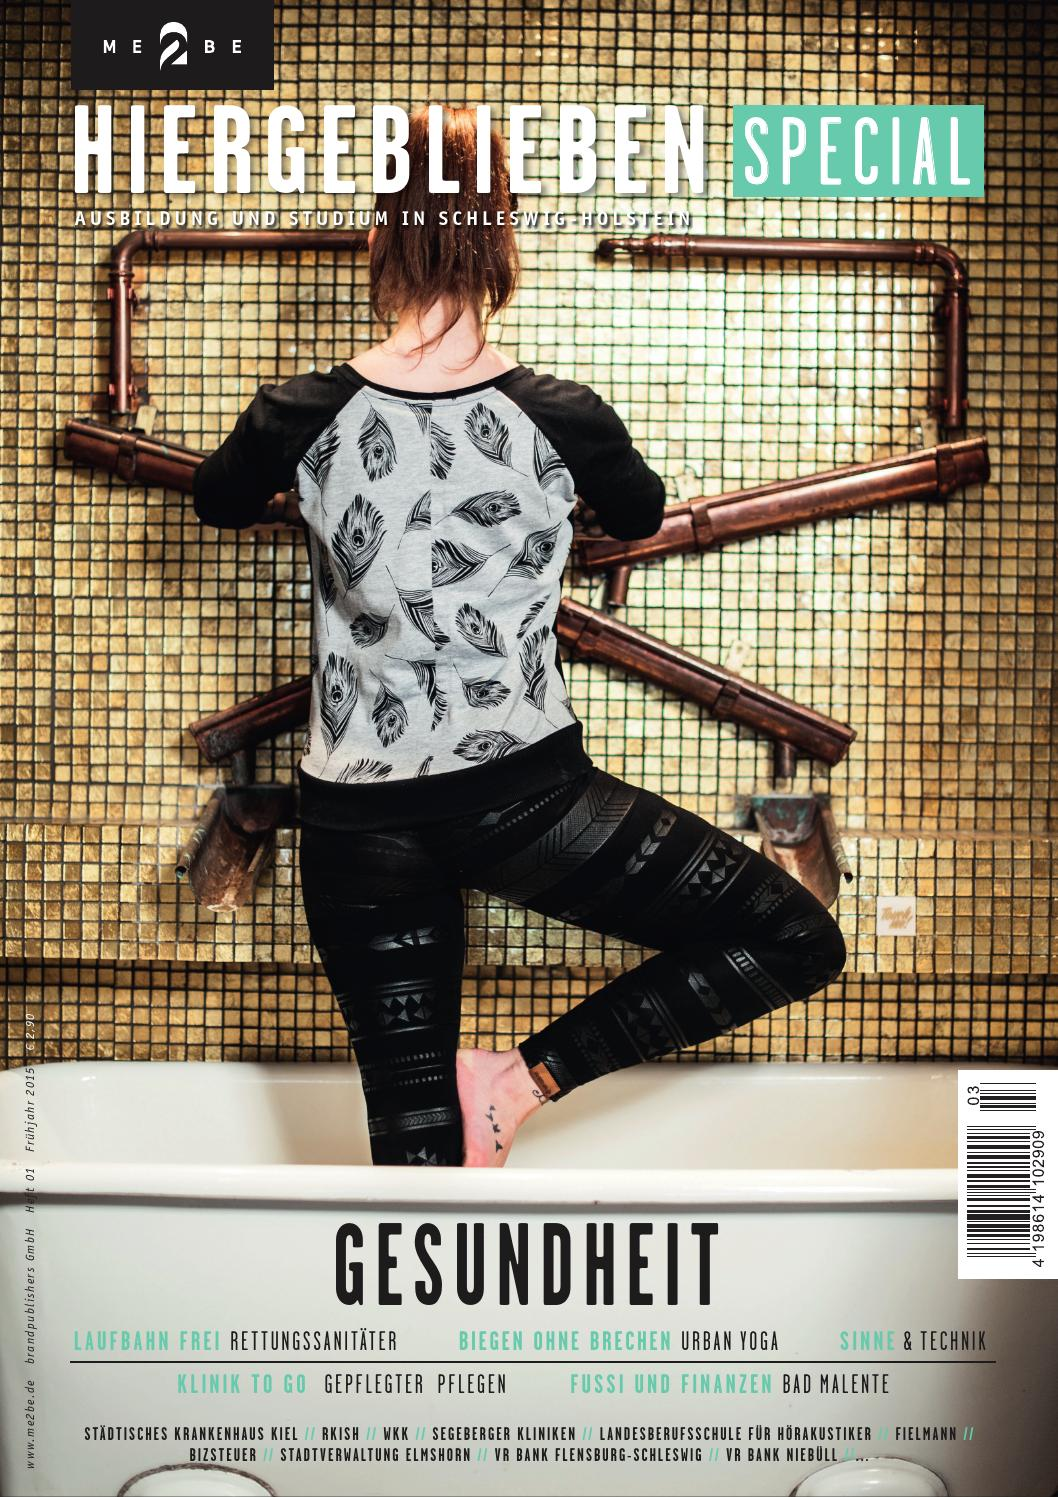 ME2BE HIERGEBLIEBEN SPECIAL by ME2BE - issuu